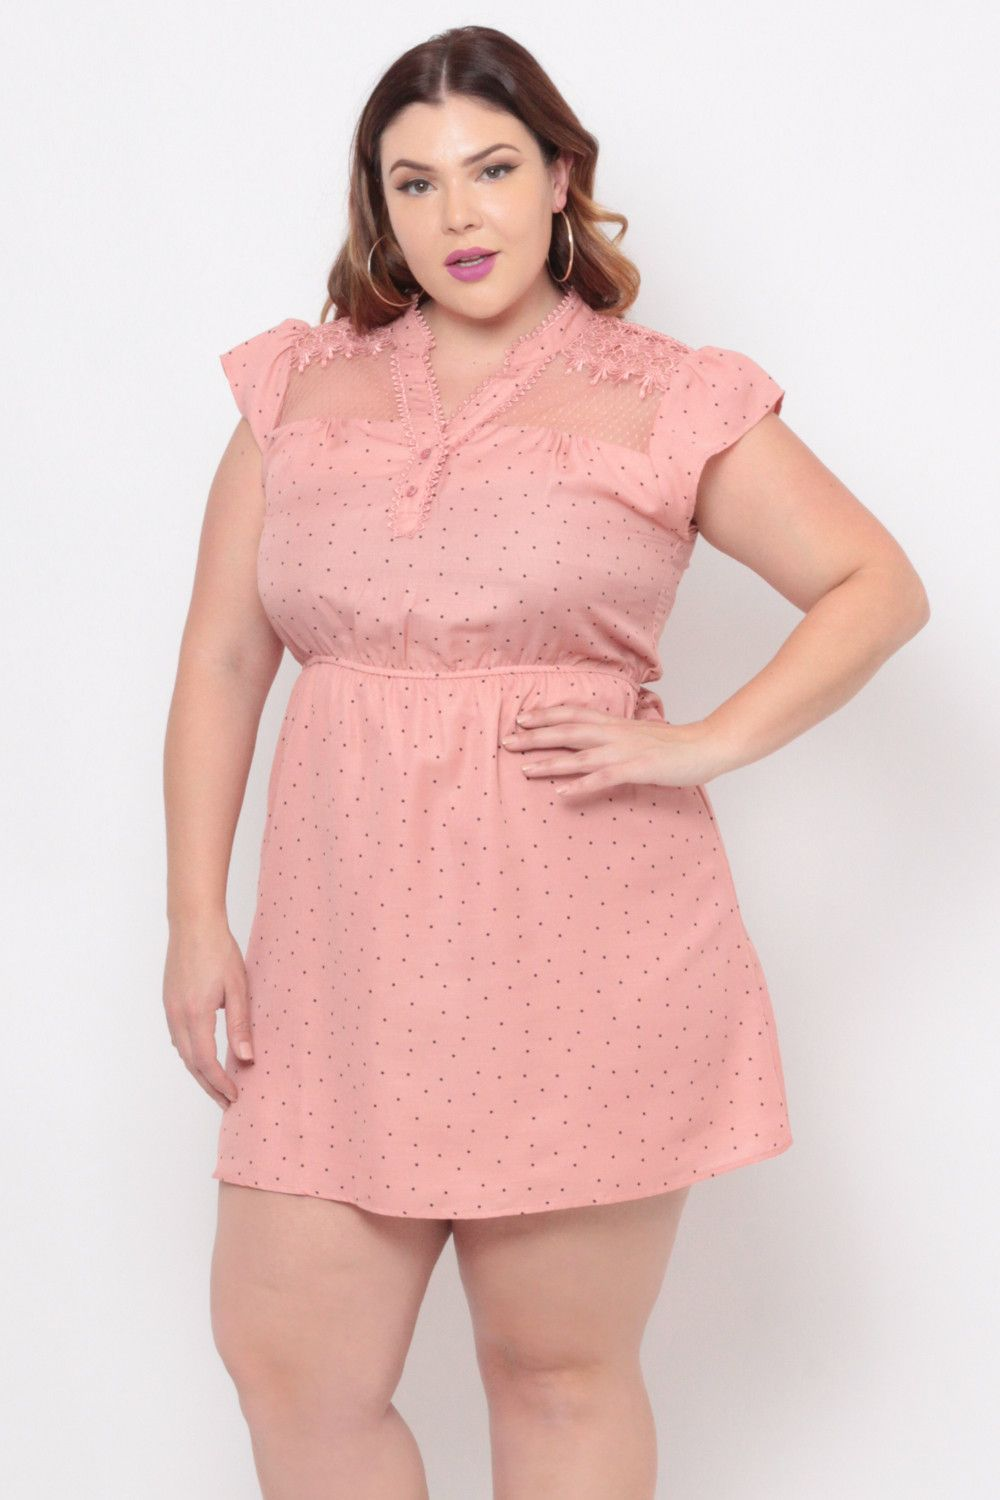 Plus Size Polkadot Crochet Lace Dress - Blush Pink